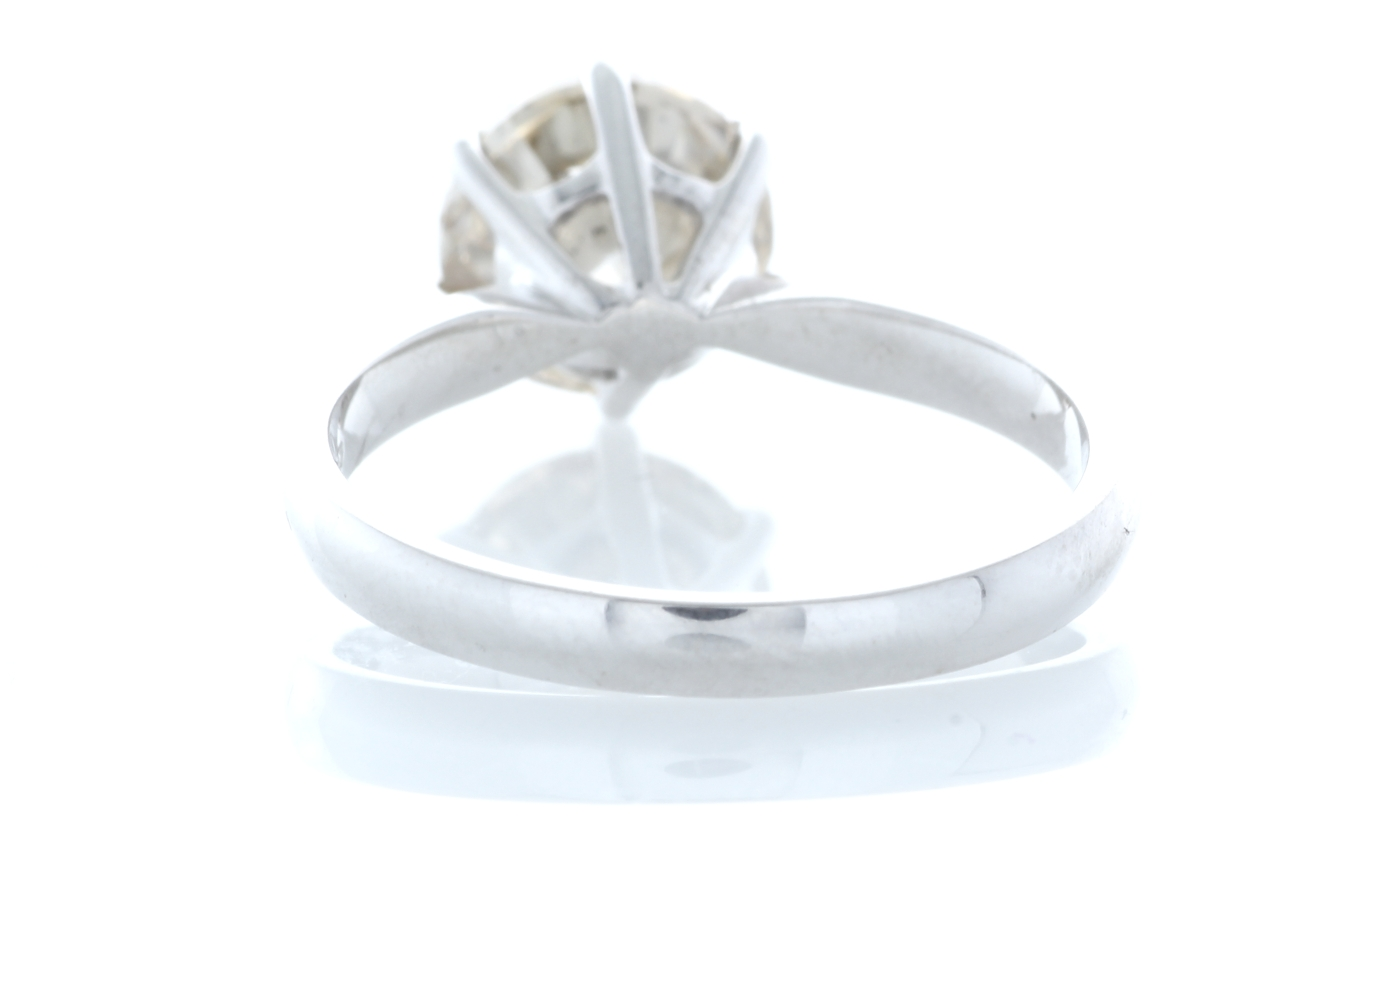 18ct White Gold Single Stone Claw Set Diamond Ring 2.58 Carats - Image 3 of 5